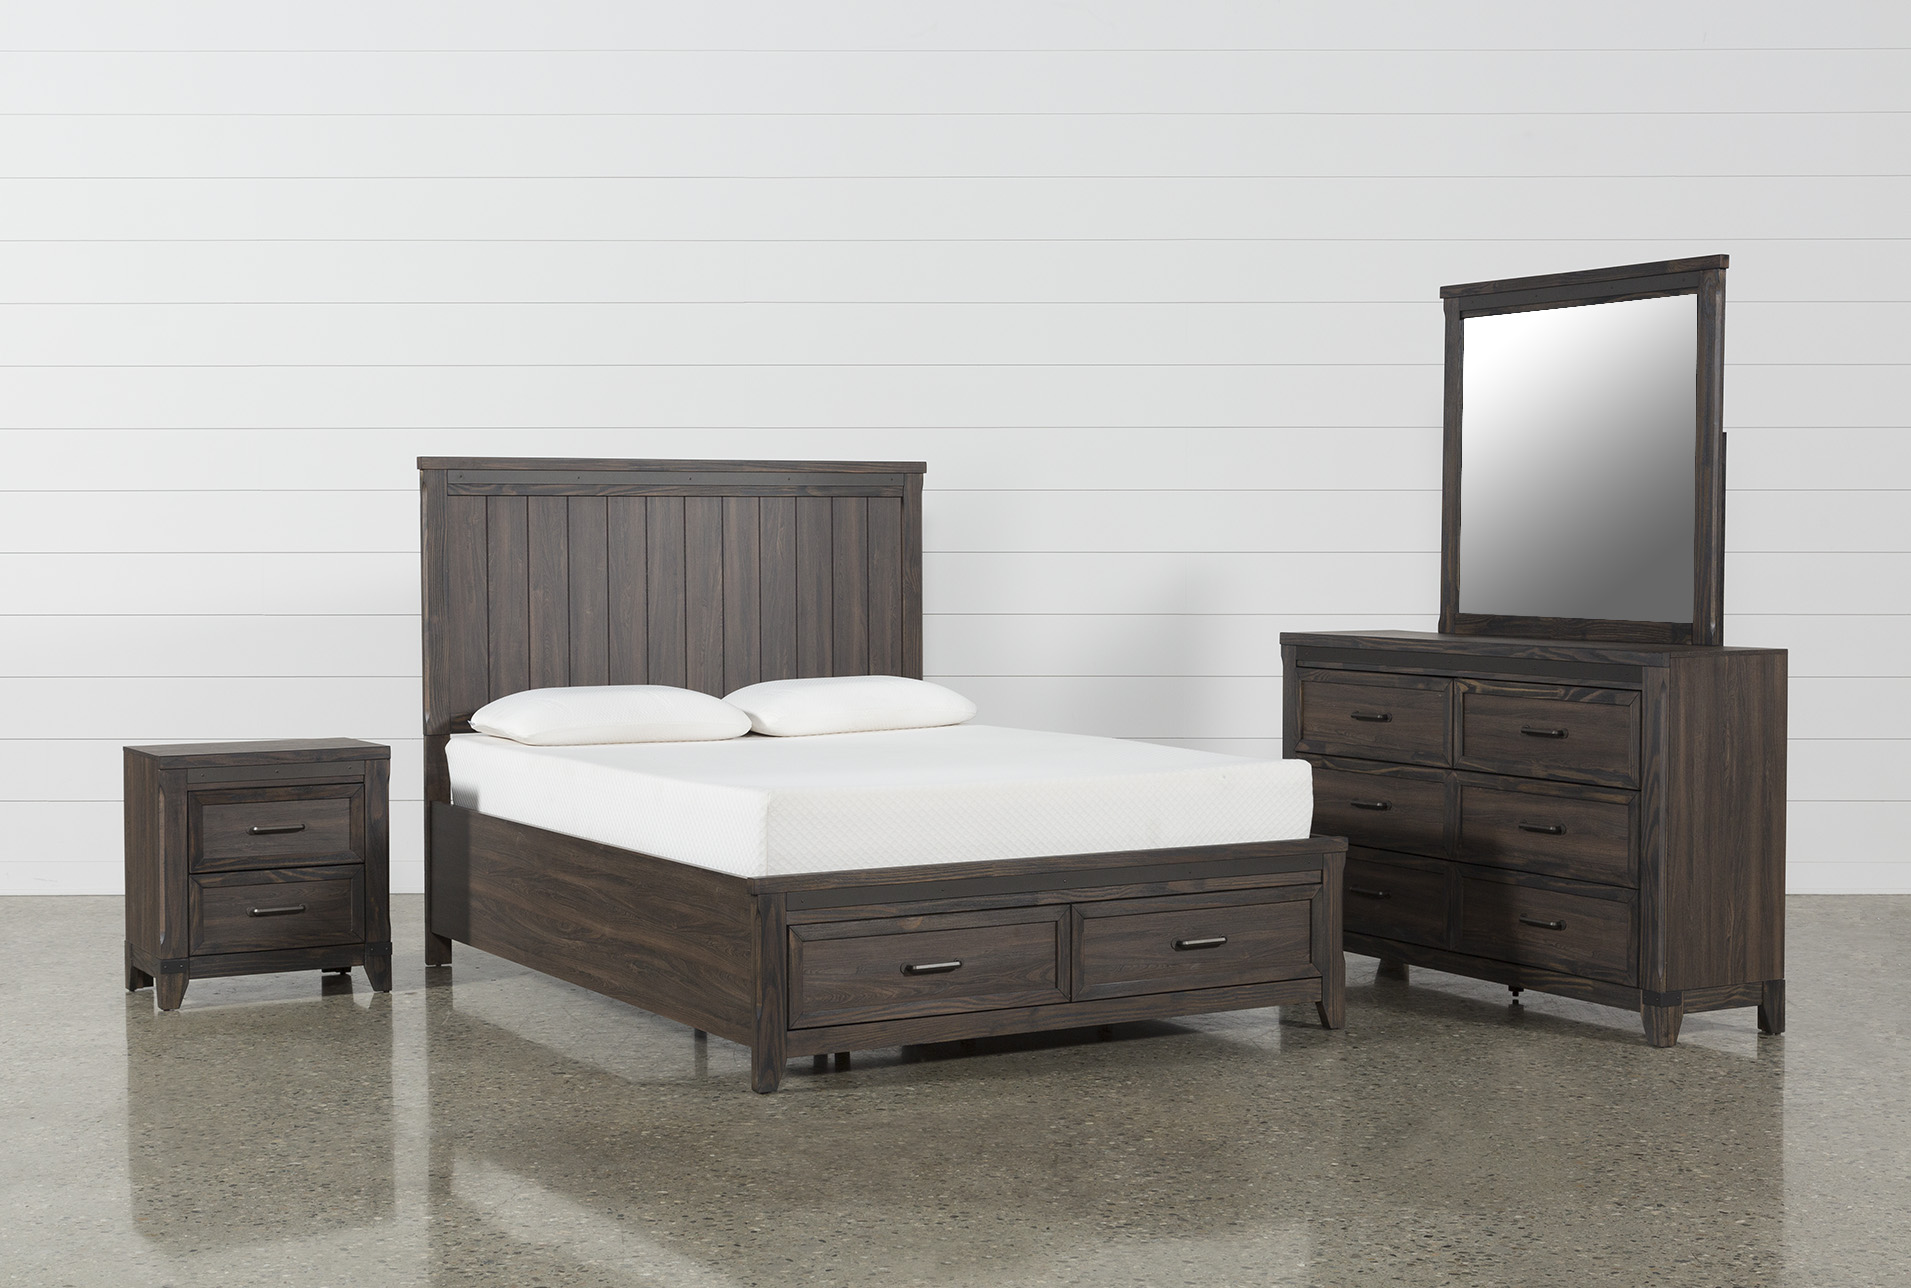 Hendricks 4 Piece California King Bedroom Set (Qty: 1) Has Been  Successfully Added To Your Cart.